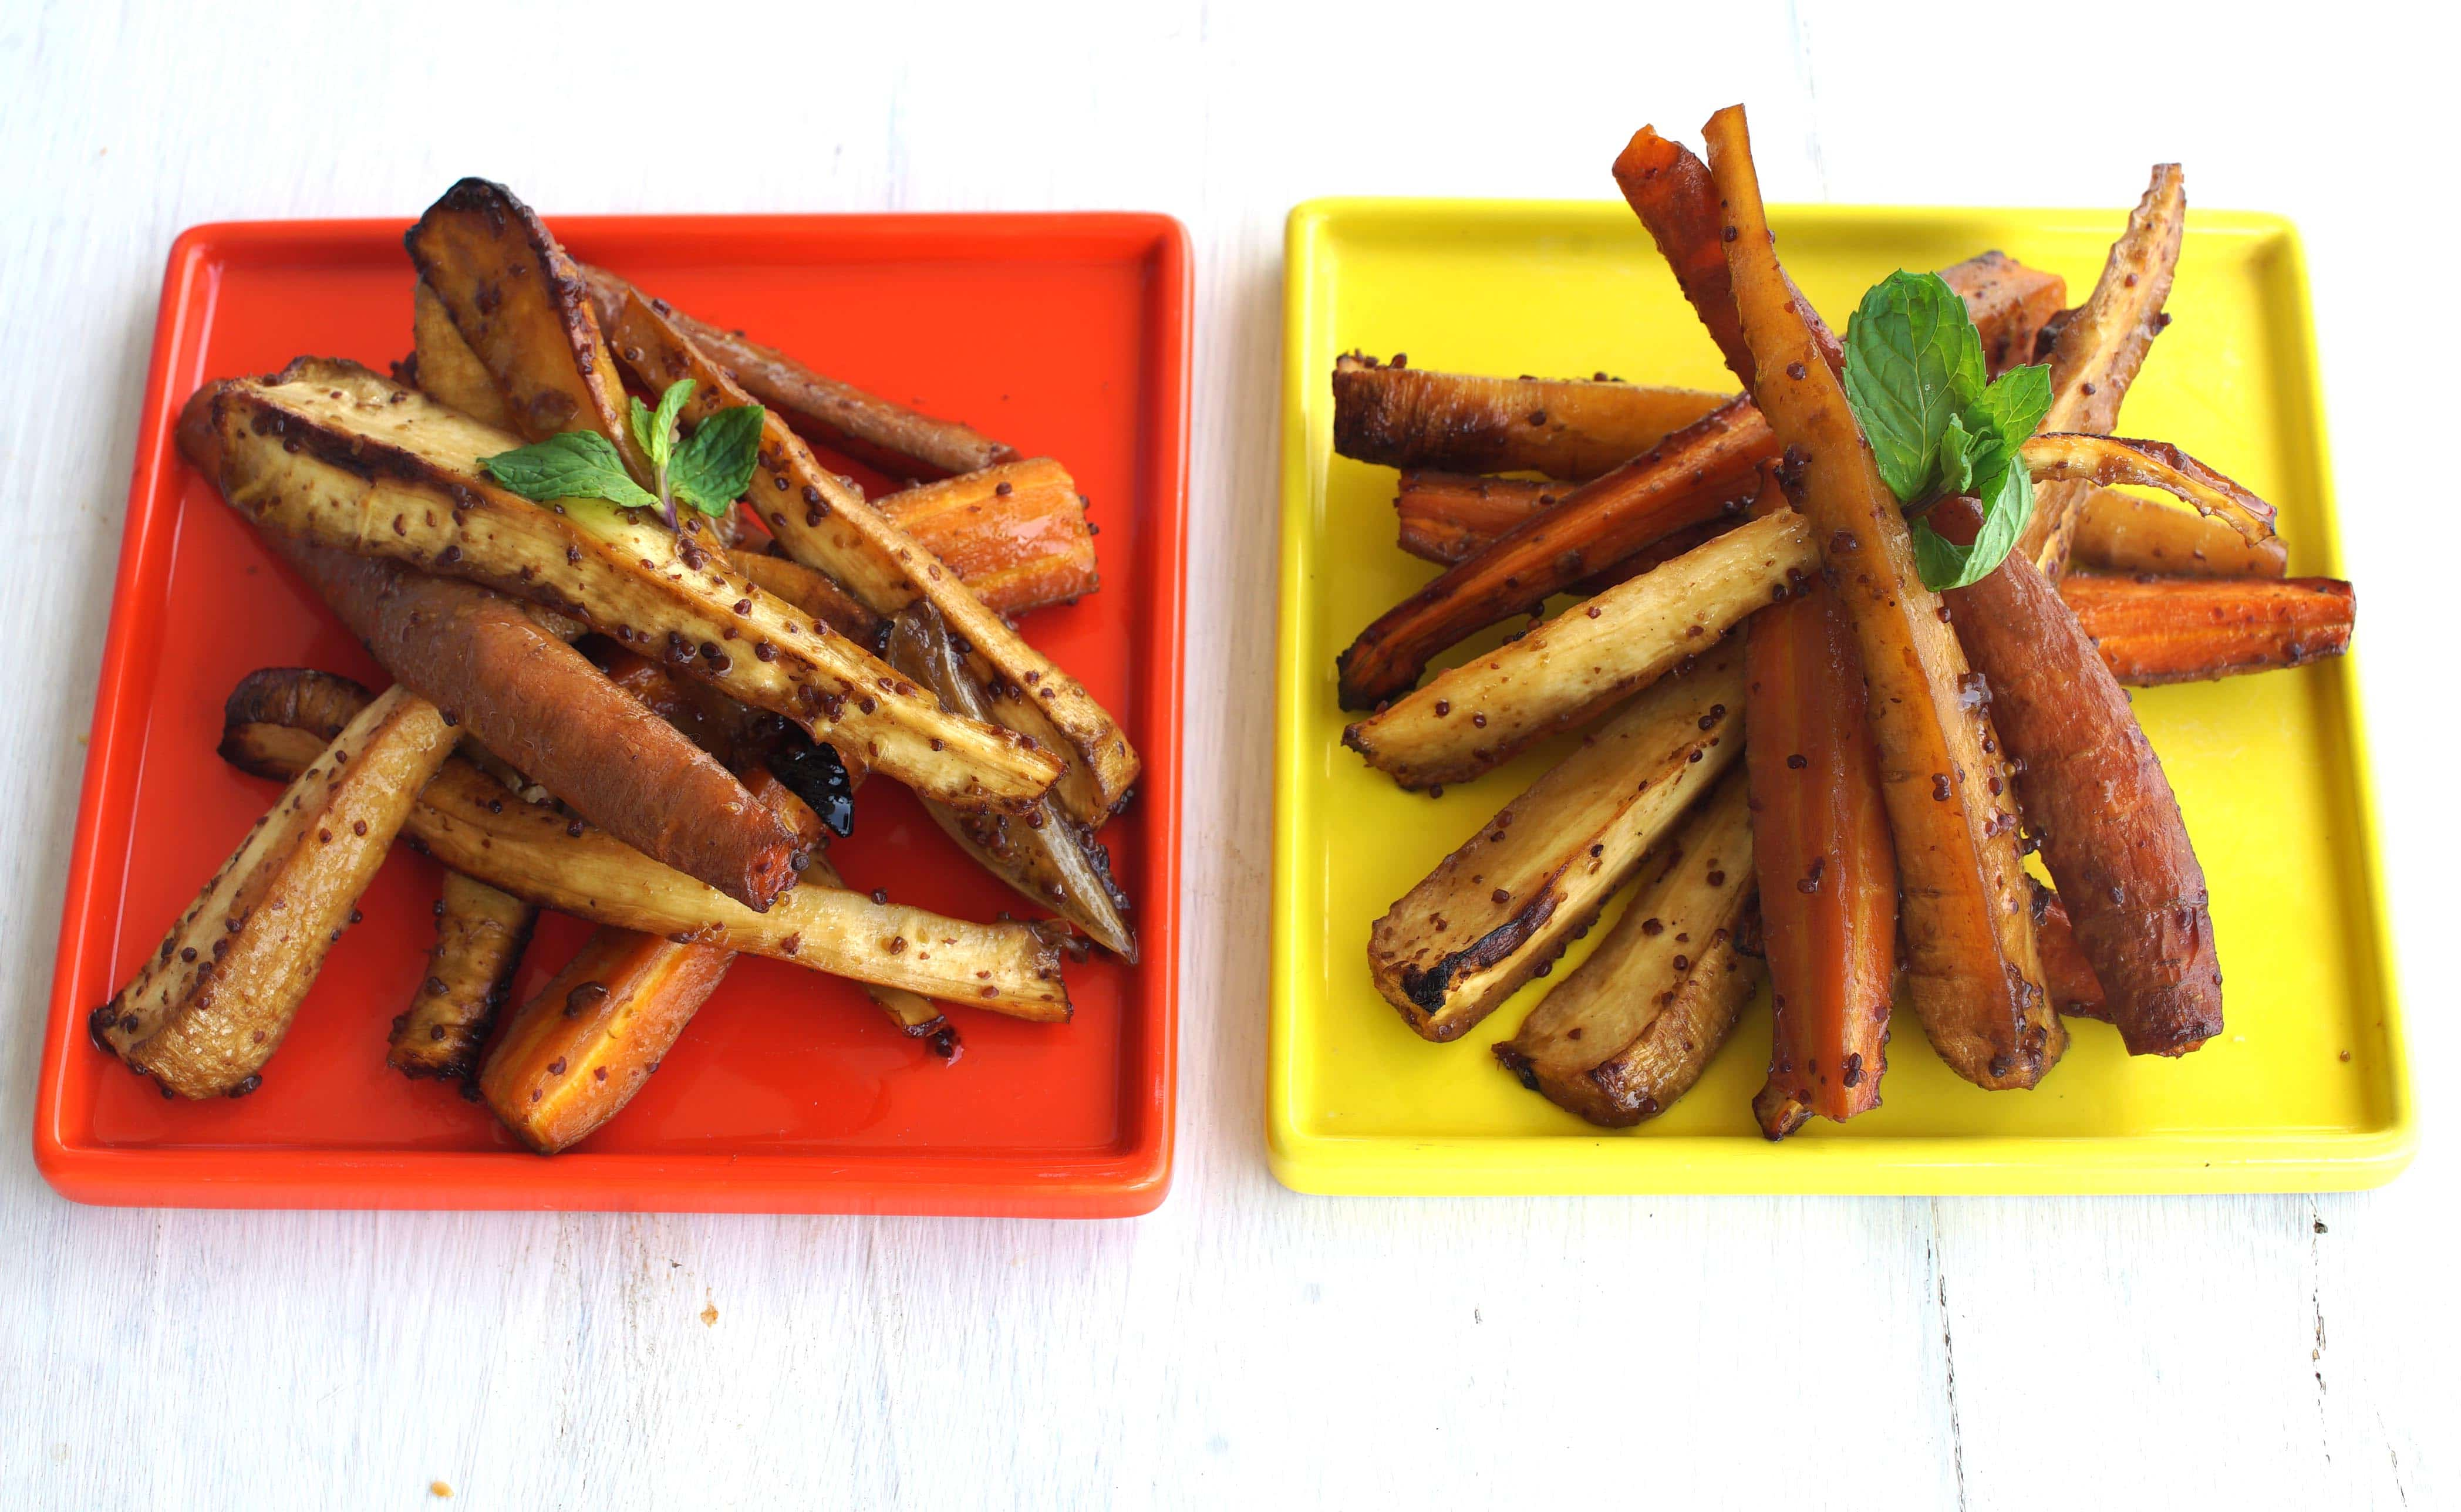 Roasted-carrots-parsnips-recipe-starters-sides-1